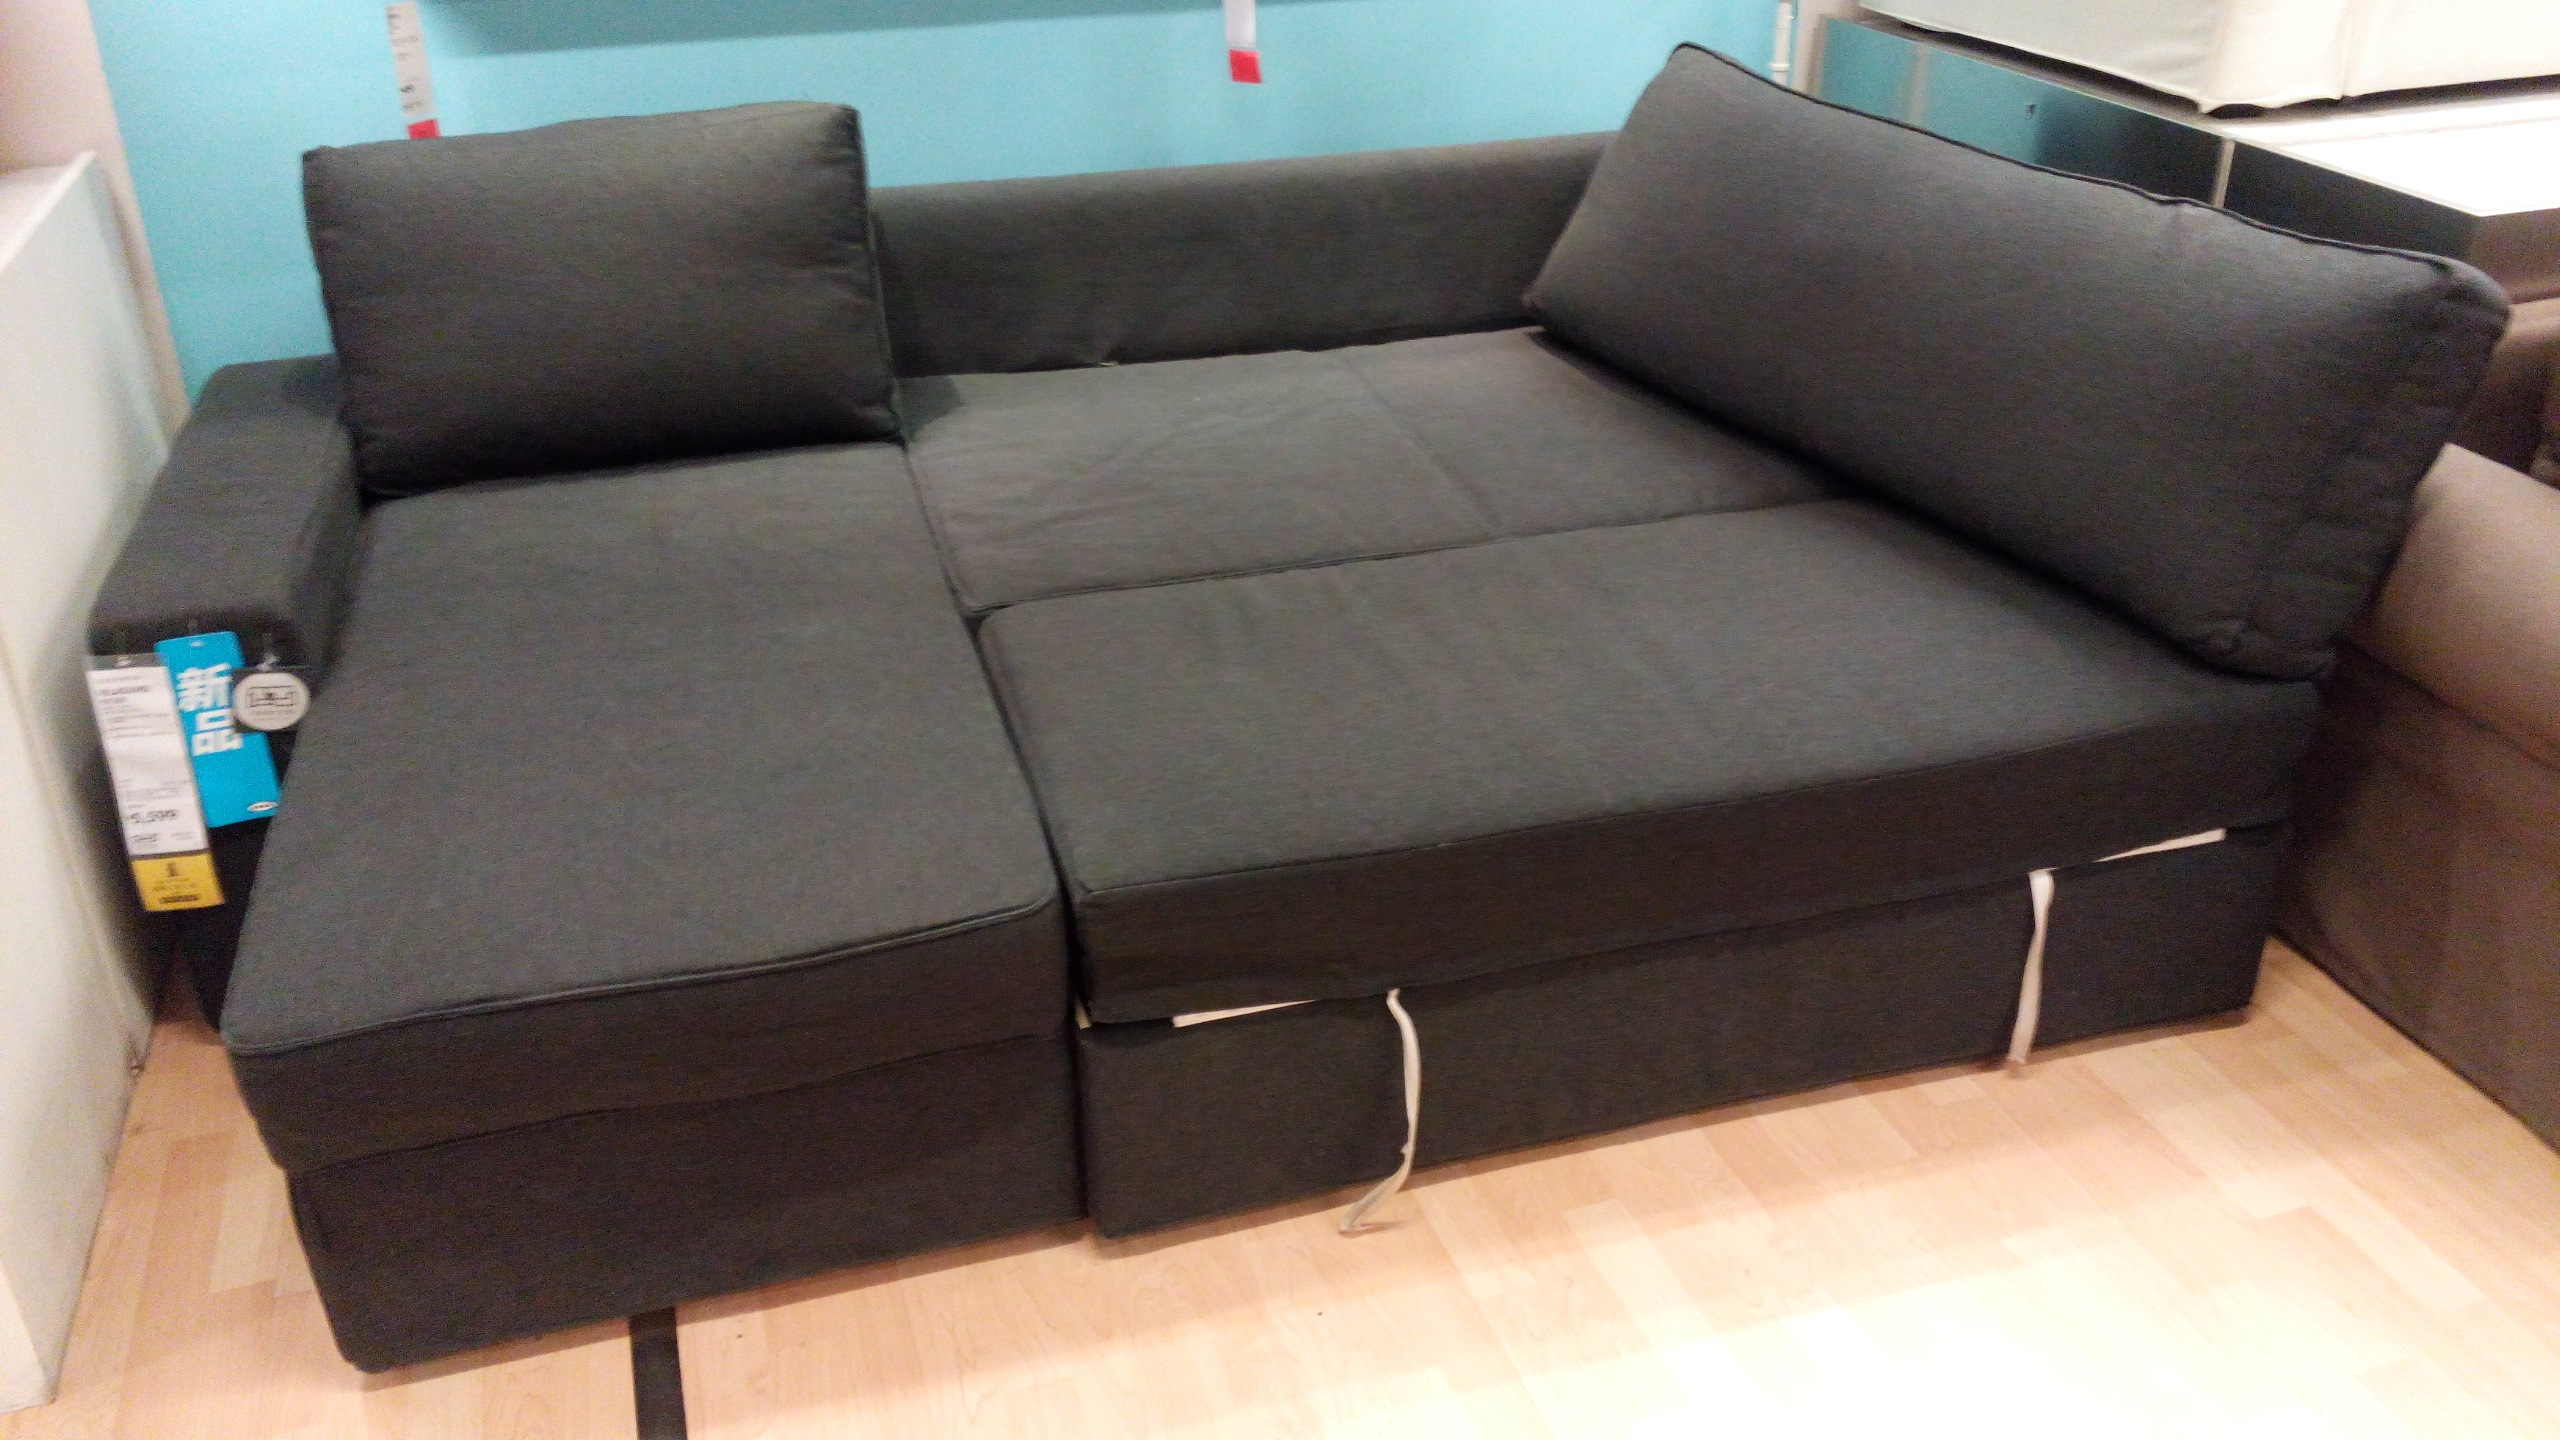 A Couch Bed ikea sofa beds